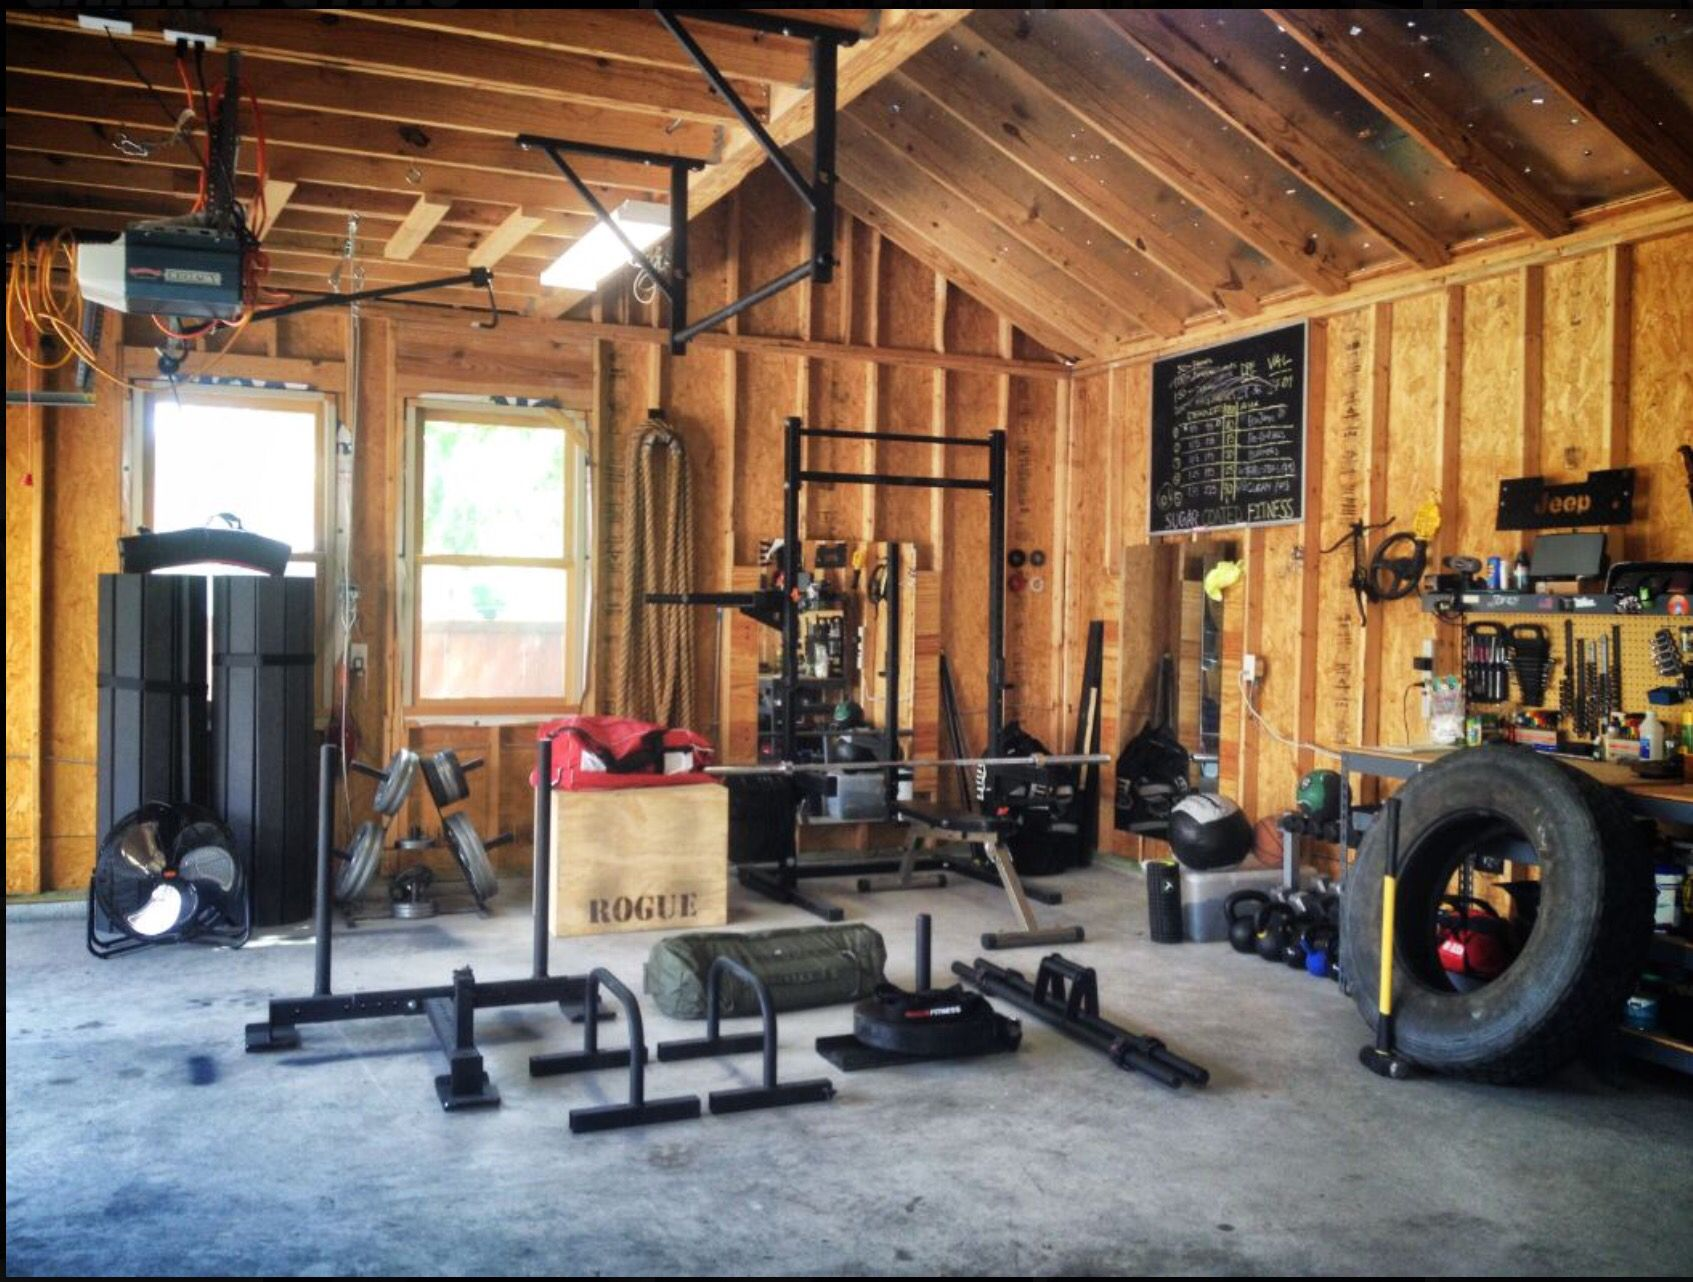 Crossfit garage gym gyms crossfit home gym home gym garage